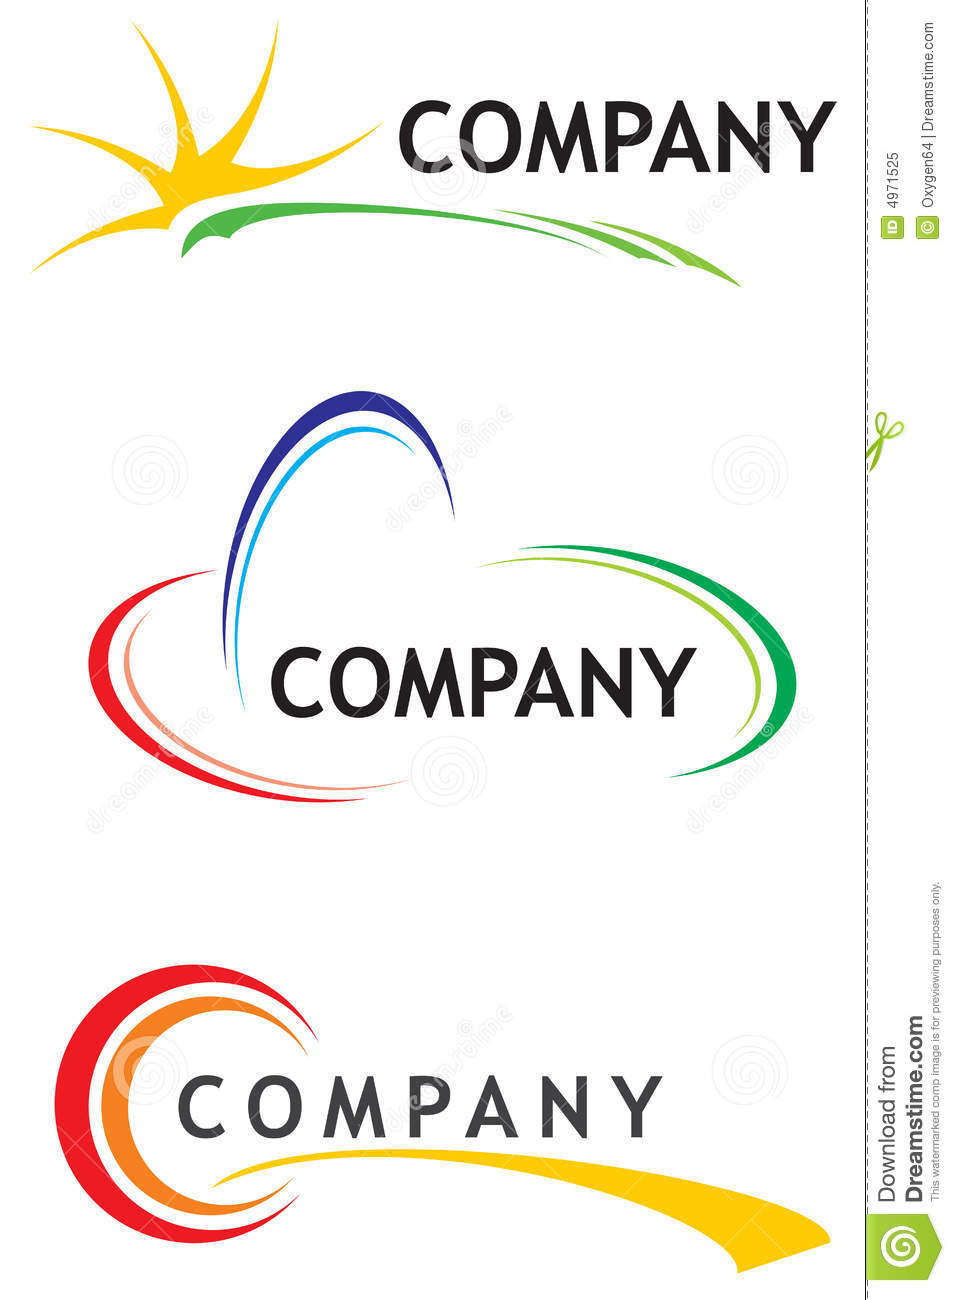 corporate logo templates stock vector  illustration of